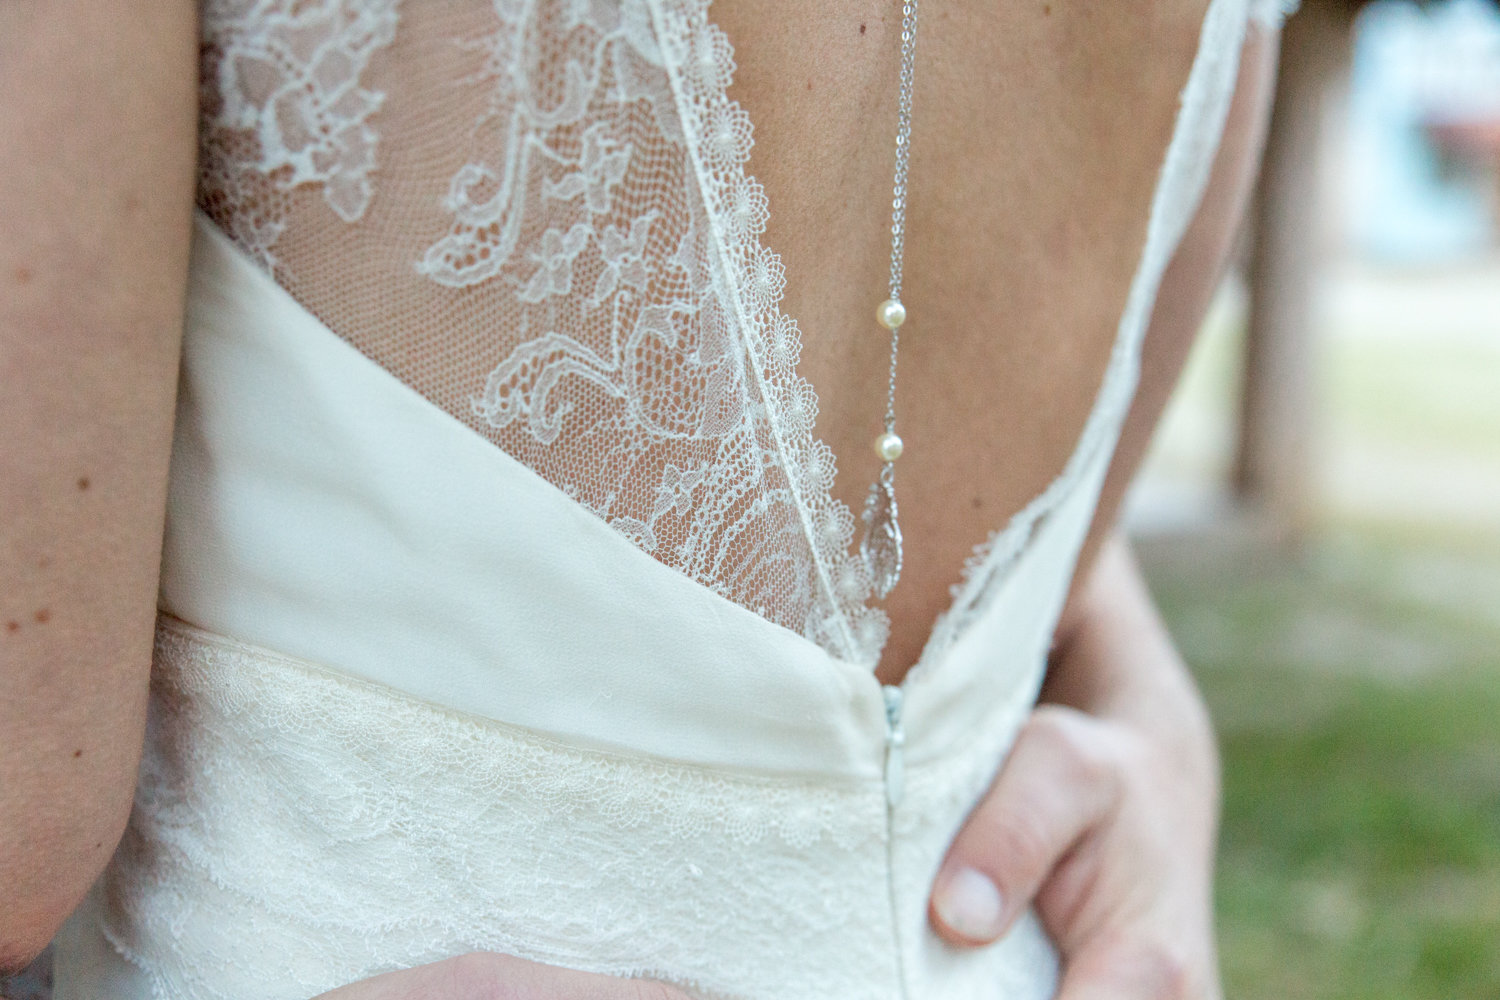 Mariage Western Chic